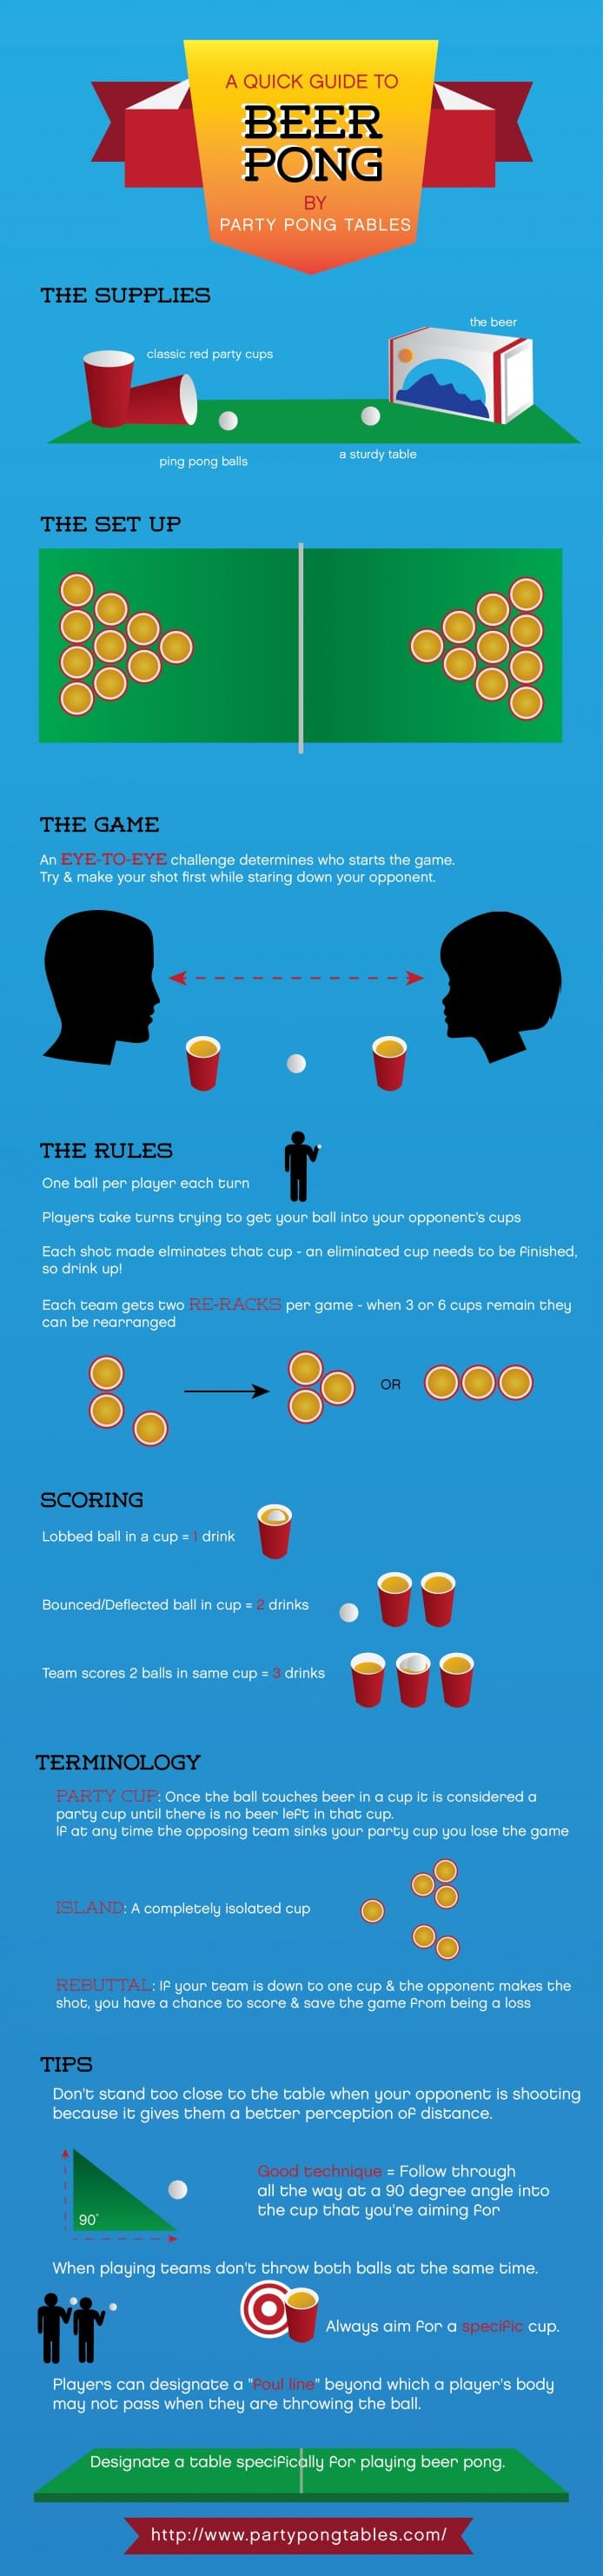 A Quick Guide to Beer Pong